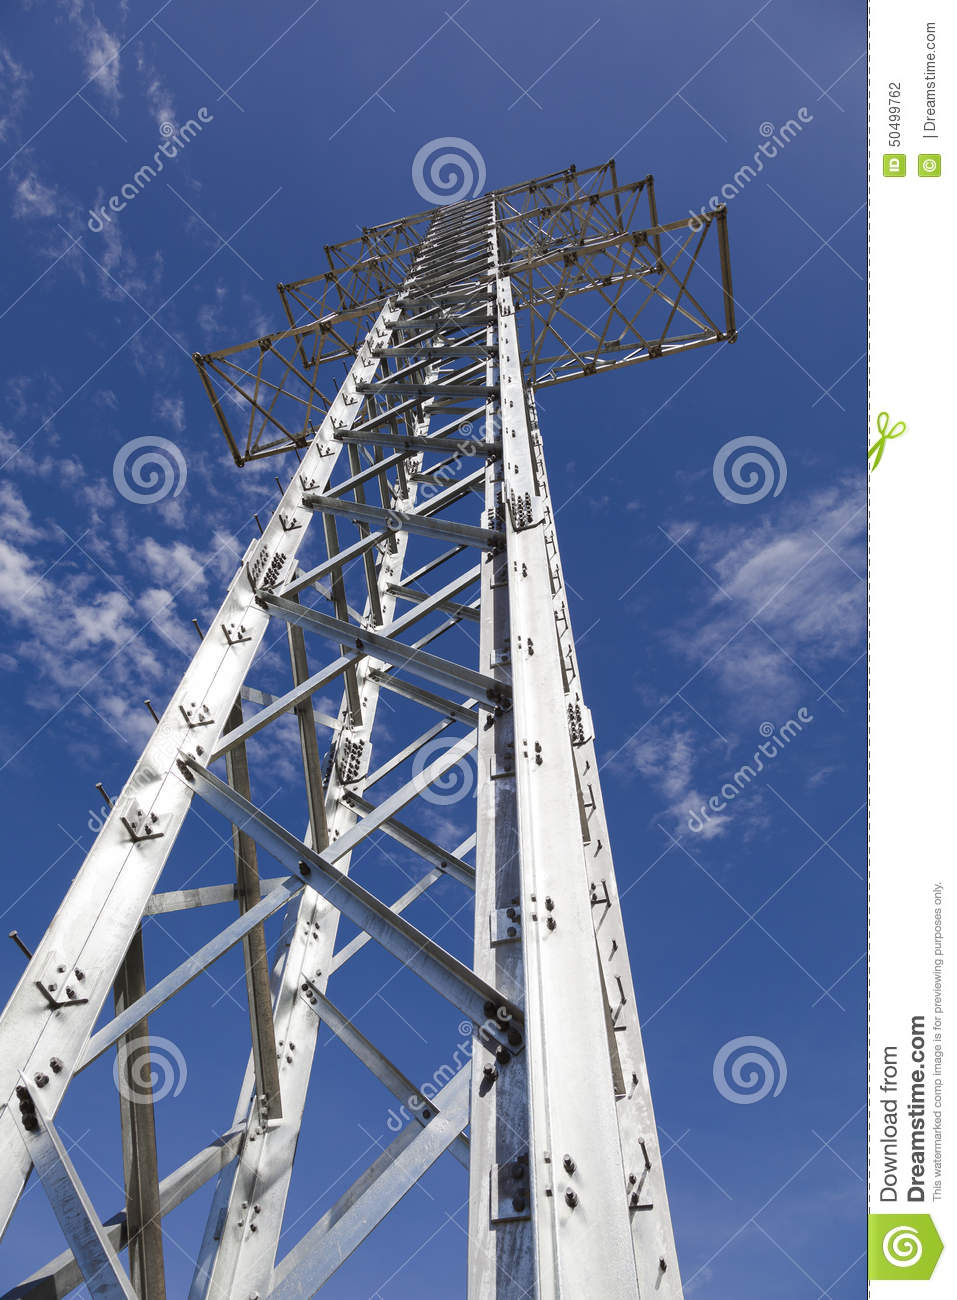 Electricity Transmission Towers Without Wires Stock Photo - Image of ...